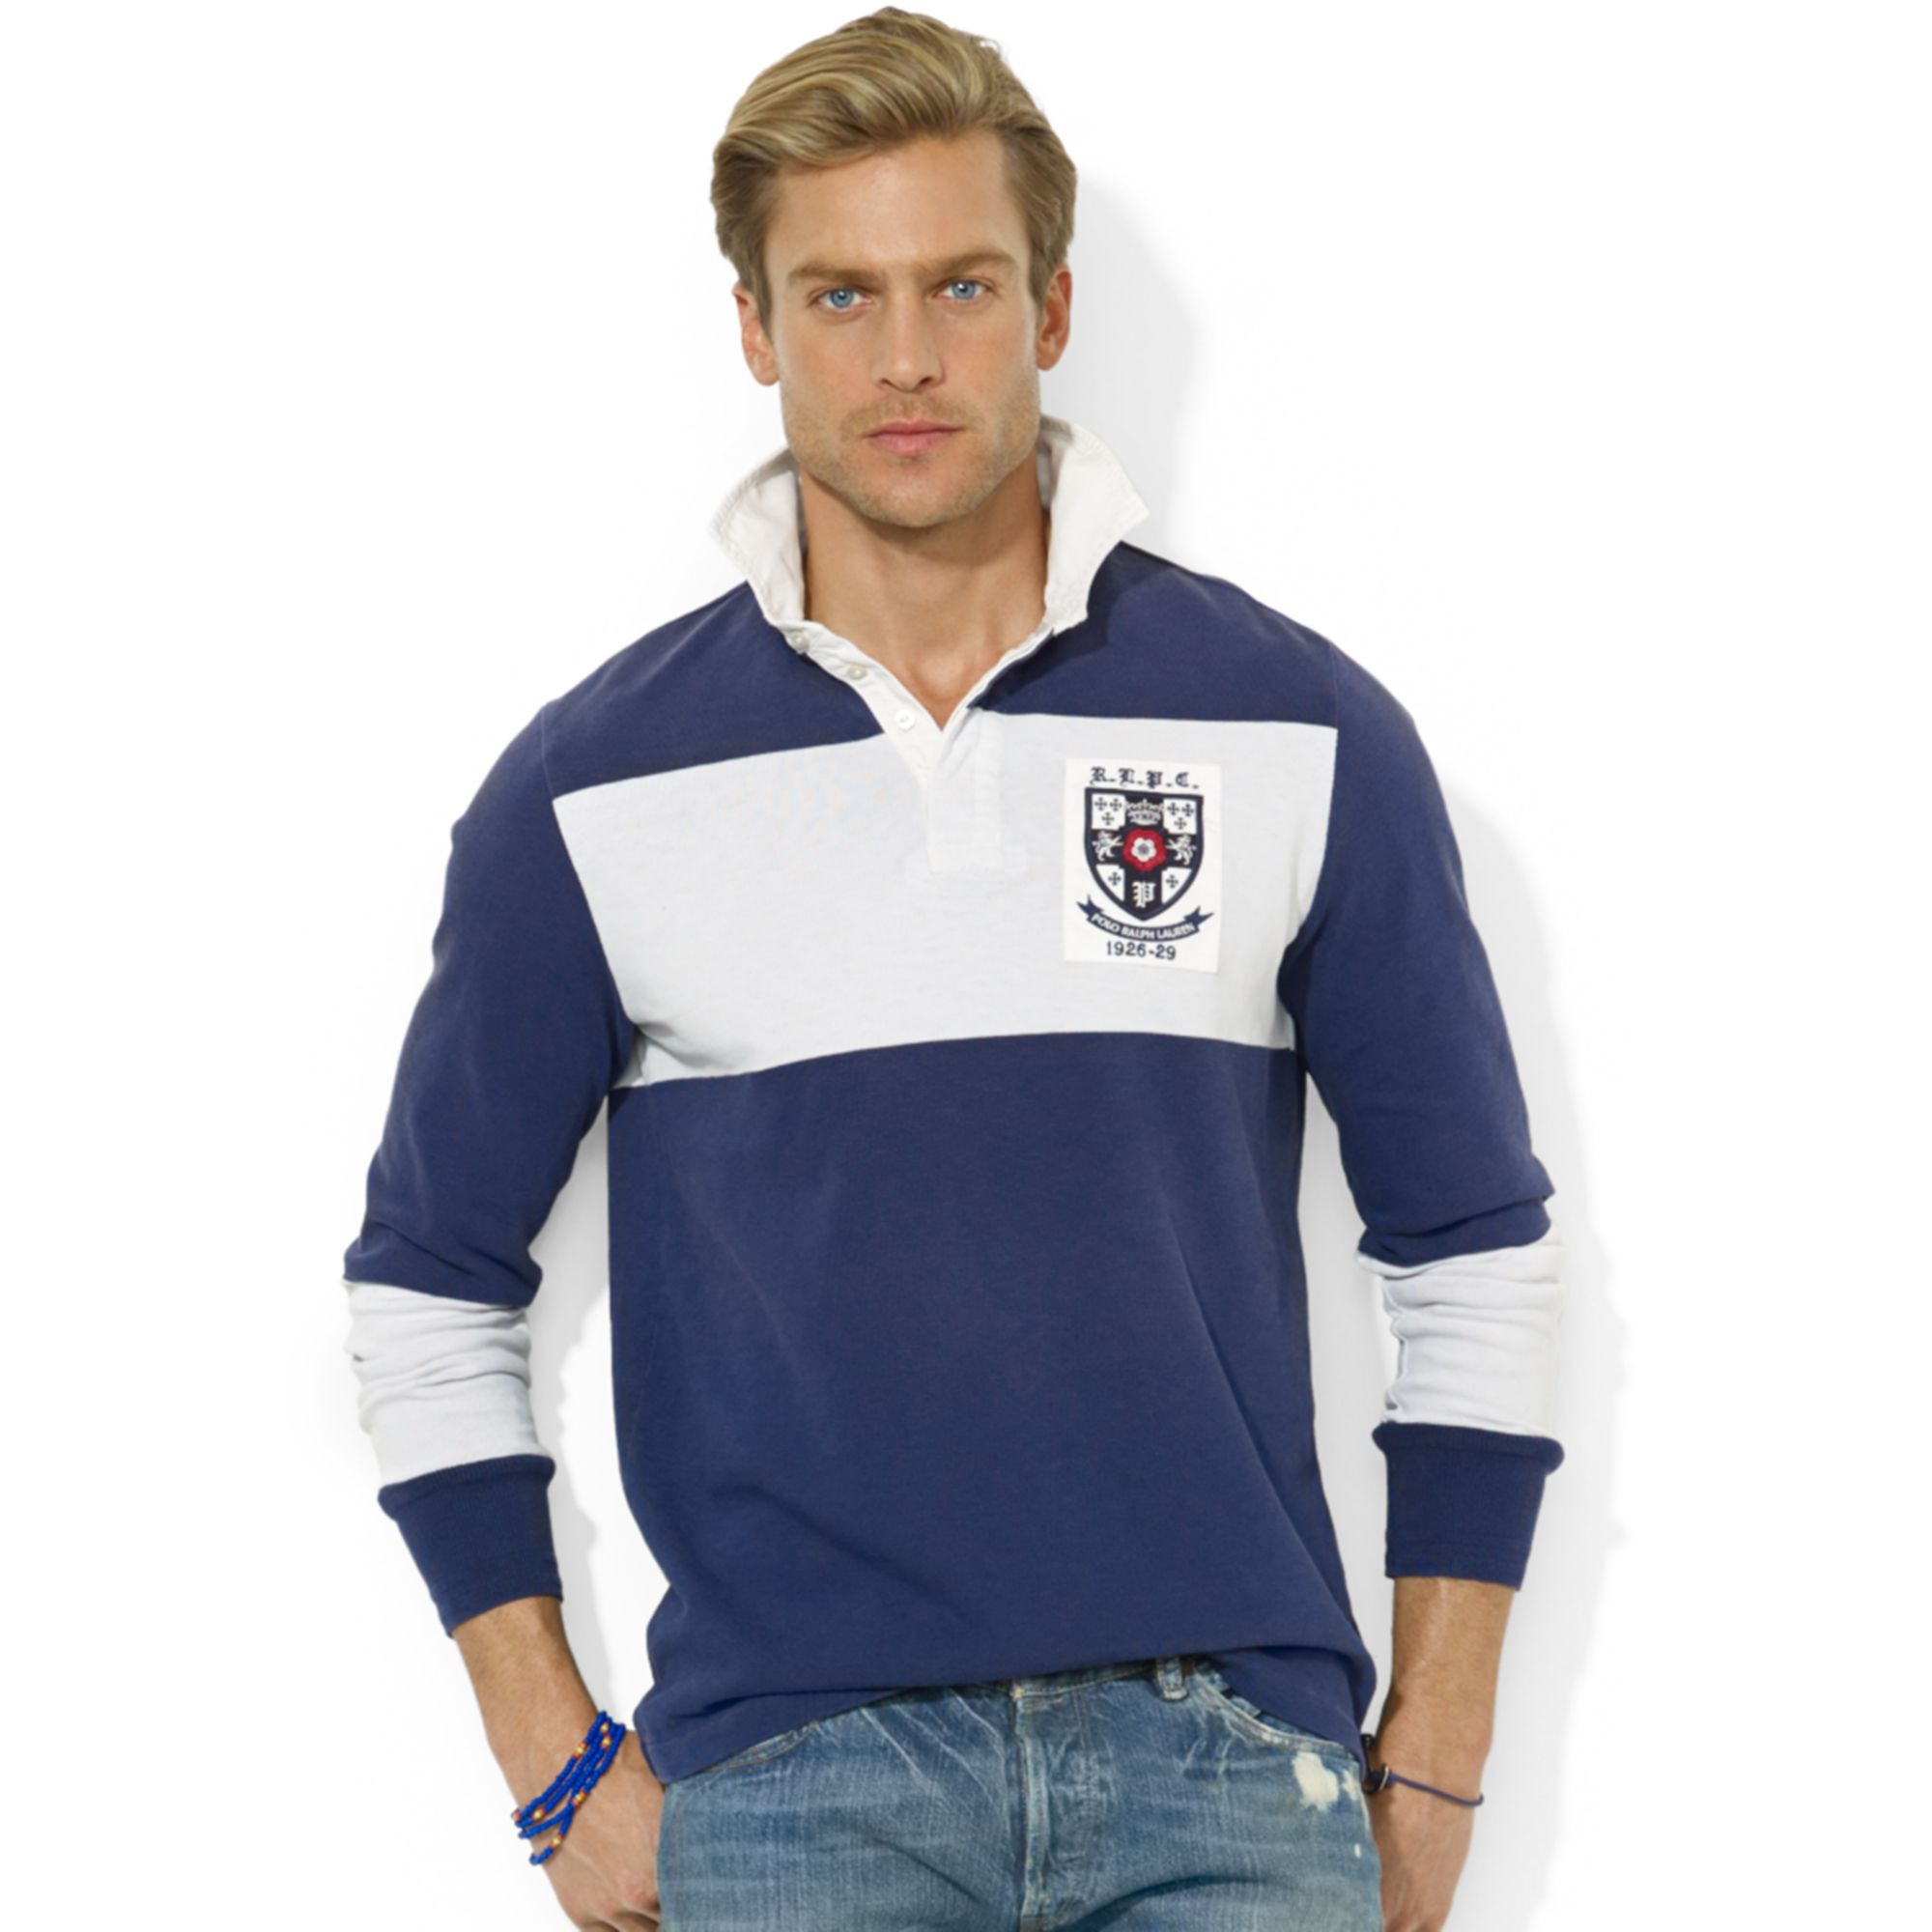 Polo ralph lauren rugby shirts for men for Big and tall polo rugby shirts